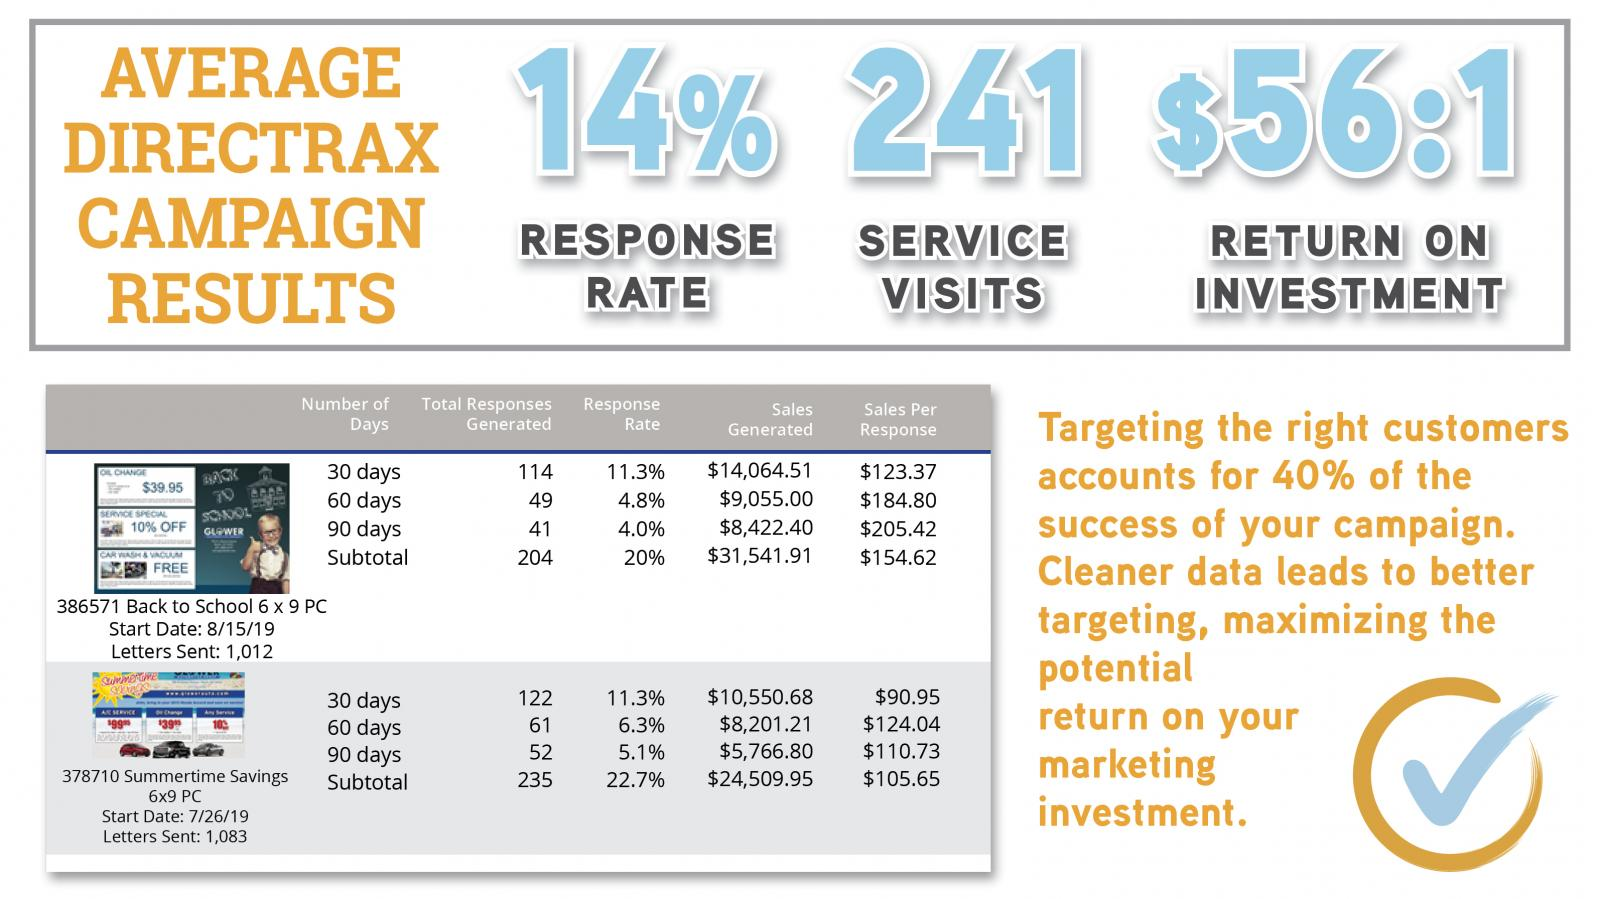 Average DirecTRAX Campaign results and data reporting.